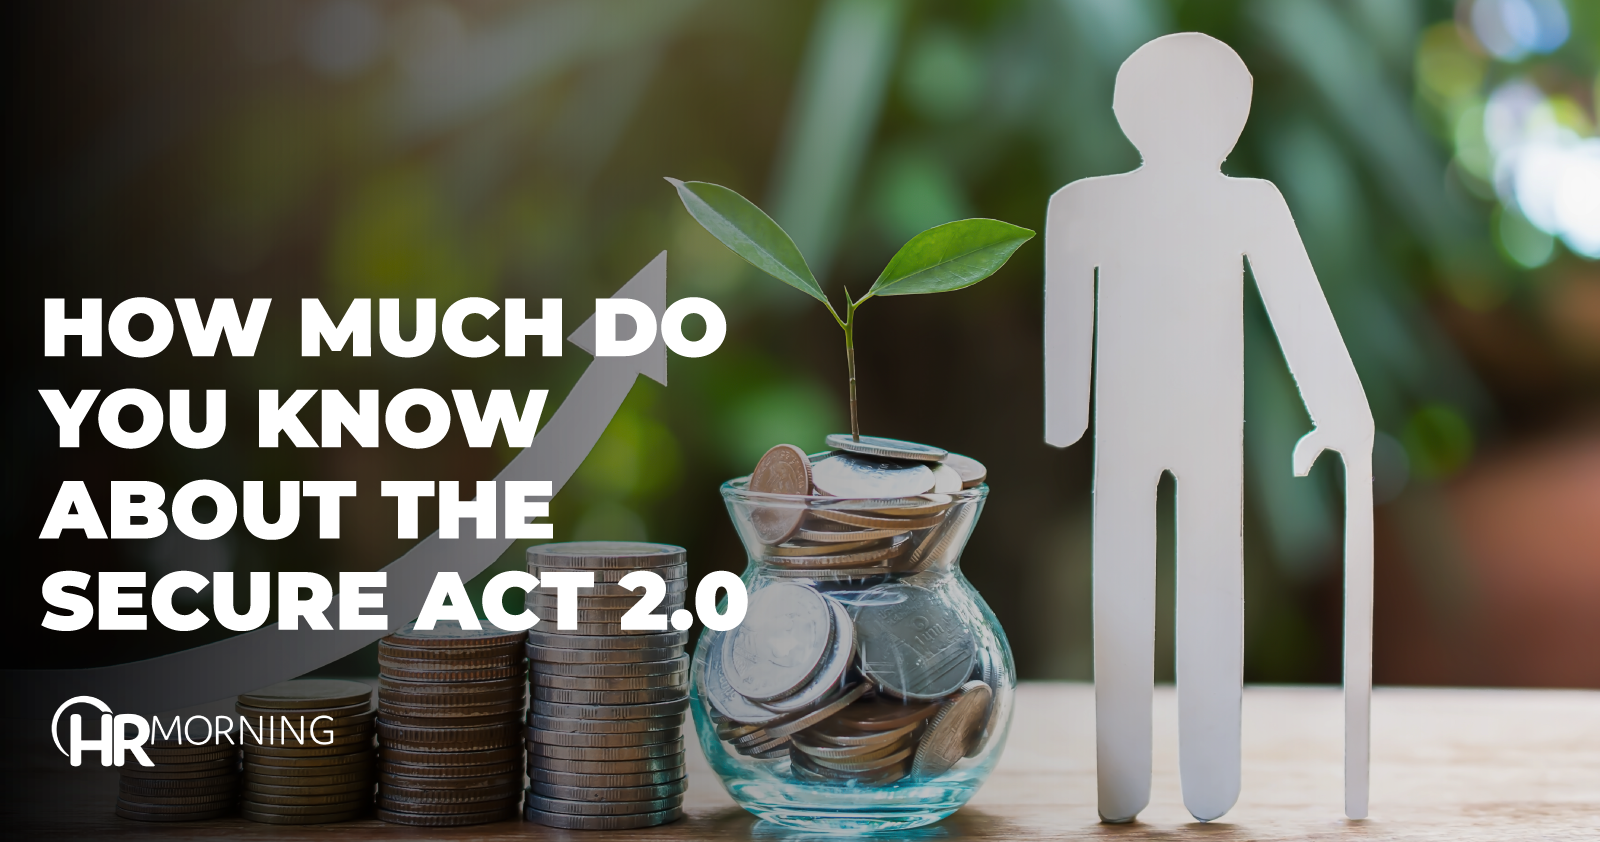 How Much Do You Know About The Secure Act 2.0